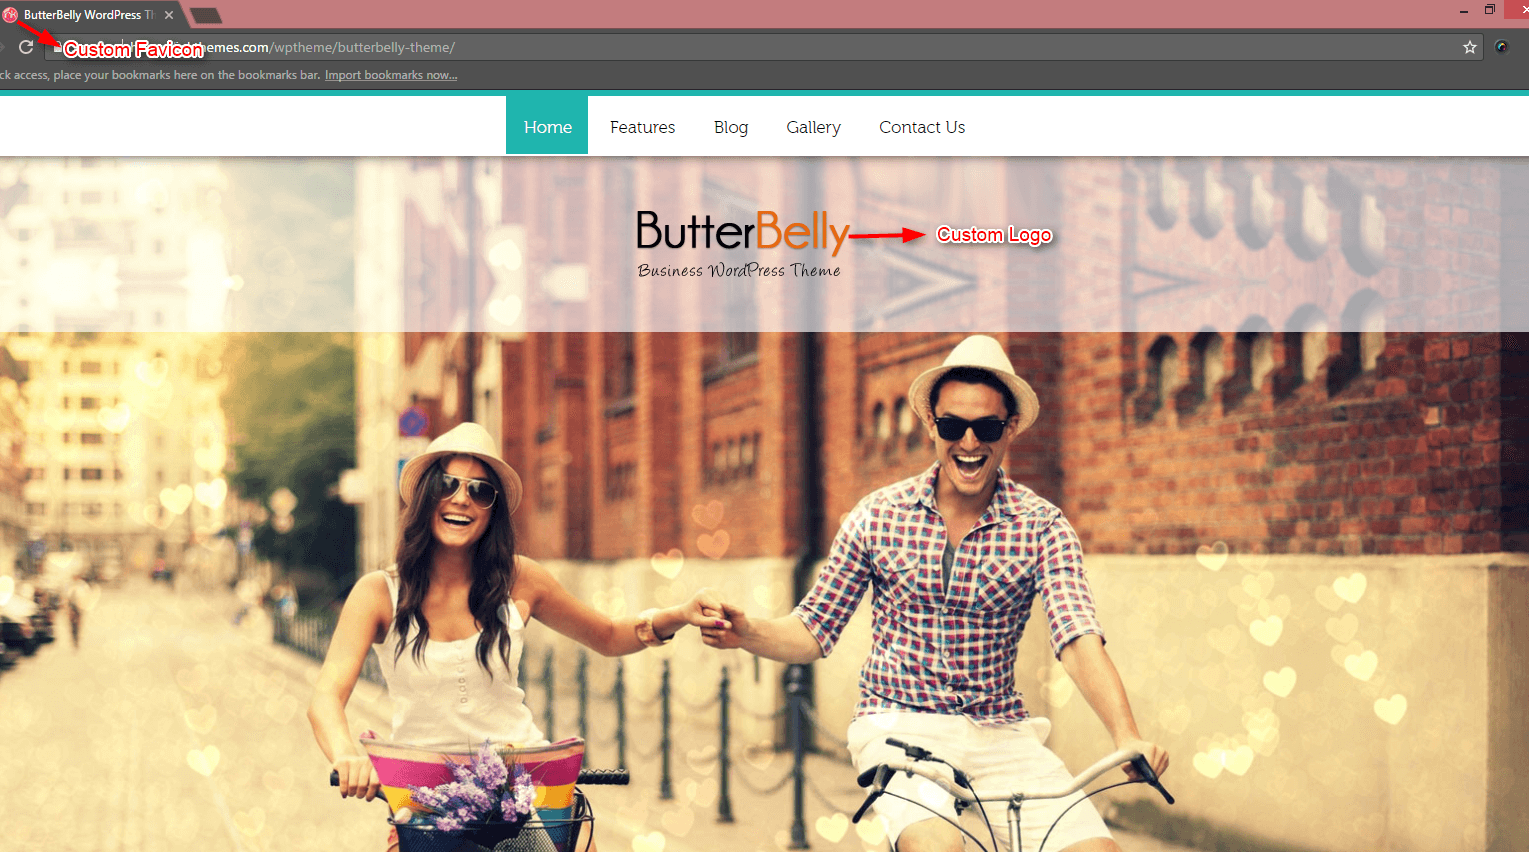 ButterBelly WordPress Theme Complete Documentation